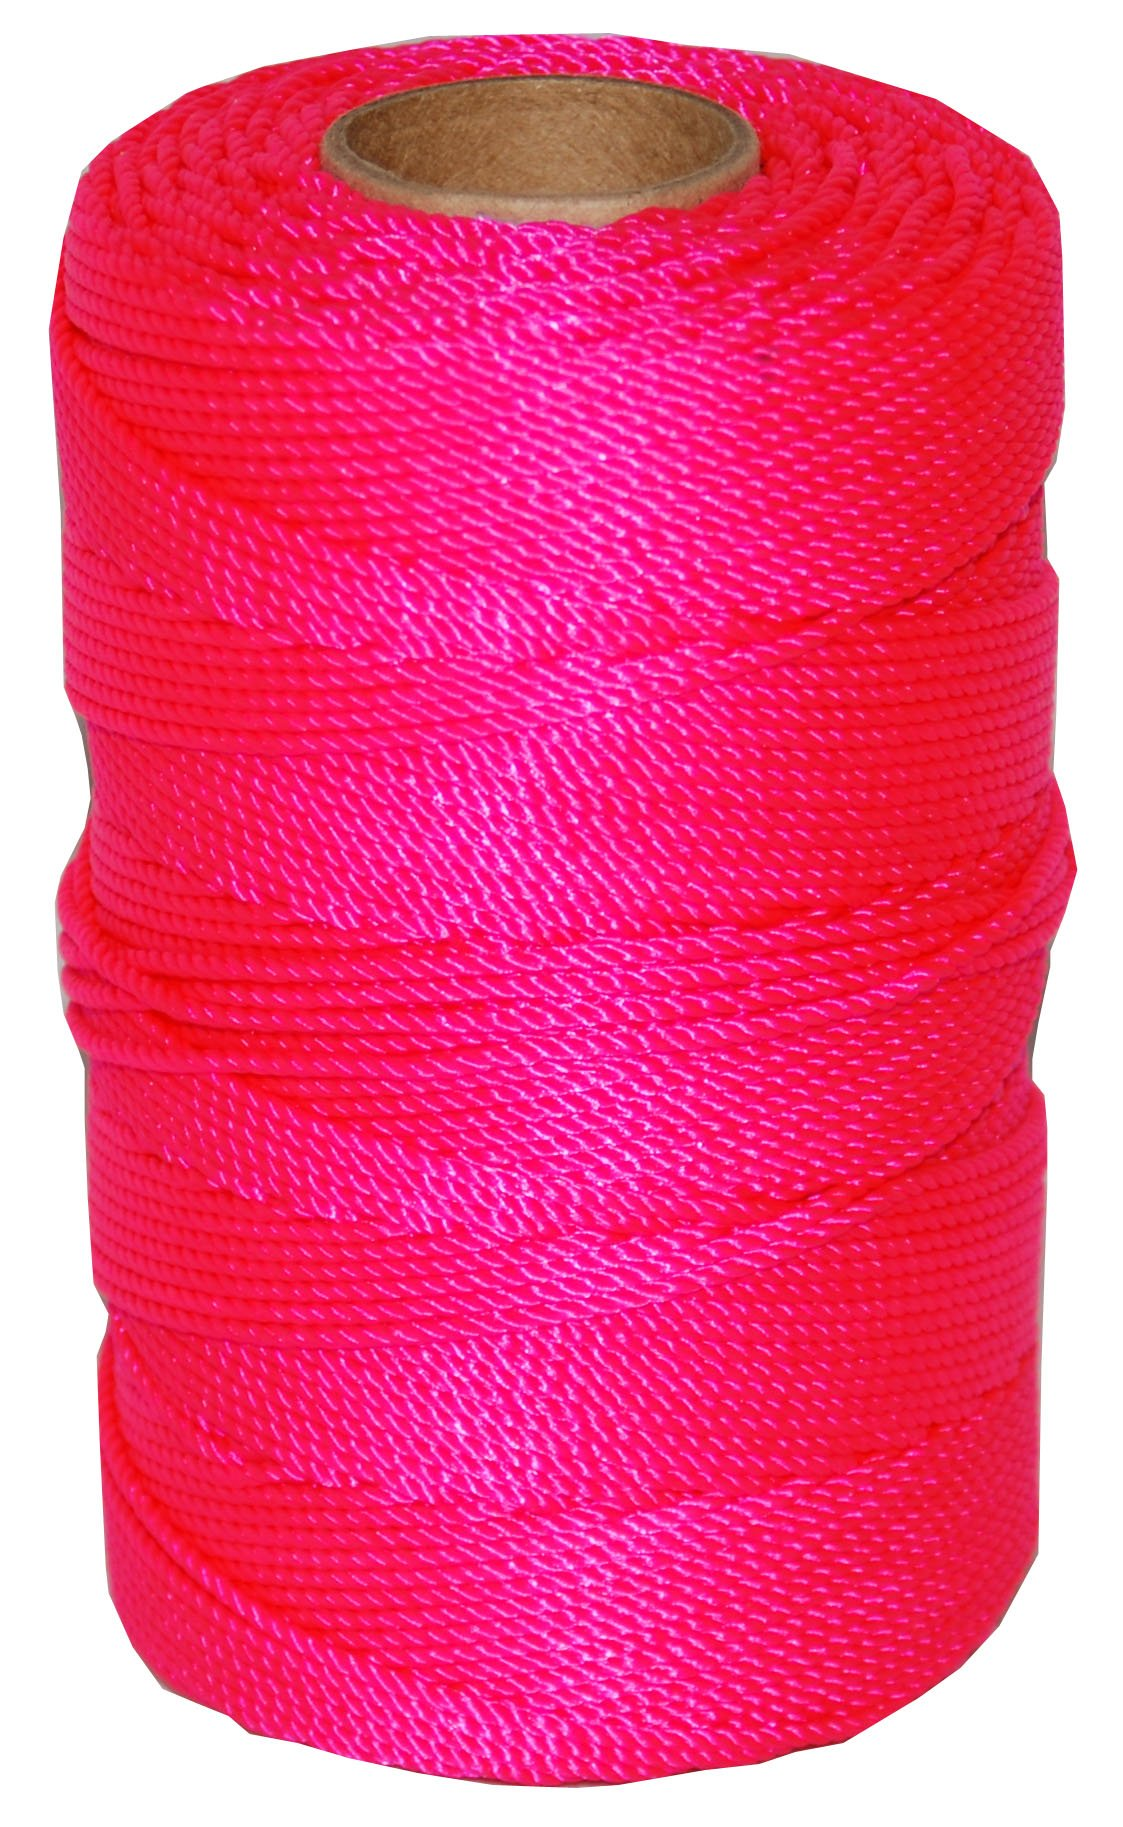 T.W . Evans Cordage 11-193 Number-18 Twisted Nylon Mason Line, 1100-Feet, Pink